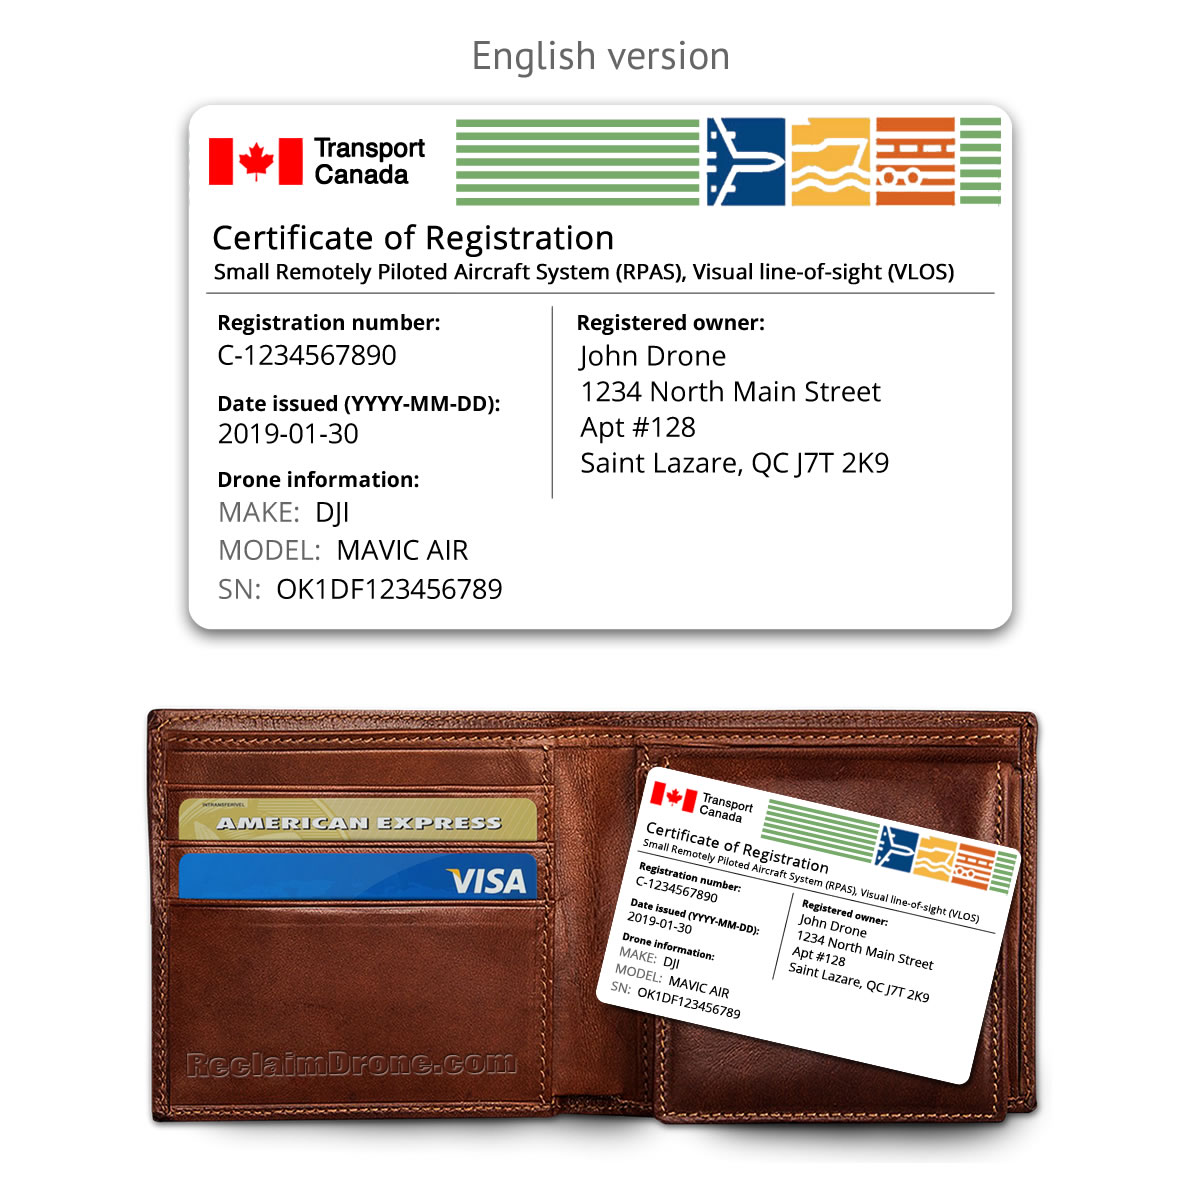 Transport Canada drone certificate of registration ID card – English version